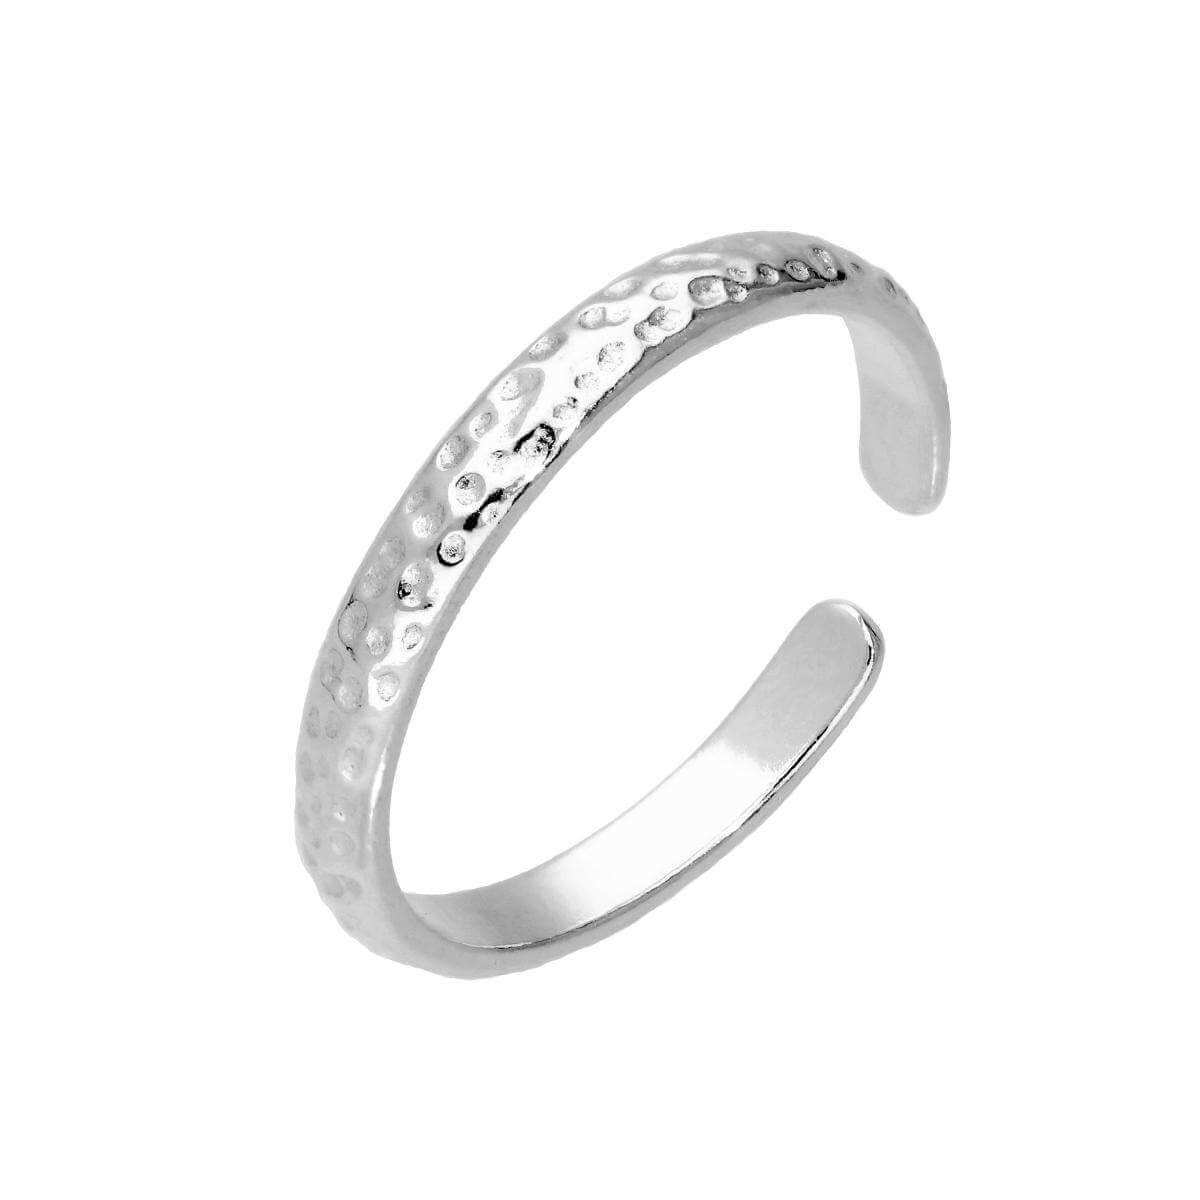 Sterling Silver Hammered Finish Adjustable Toe Ring